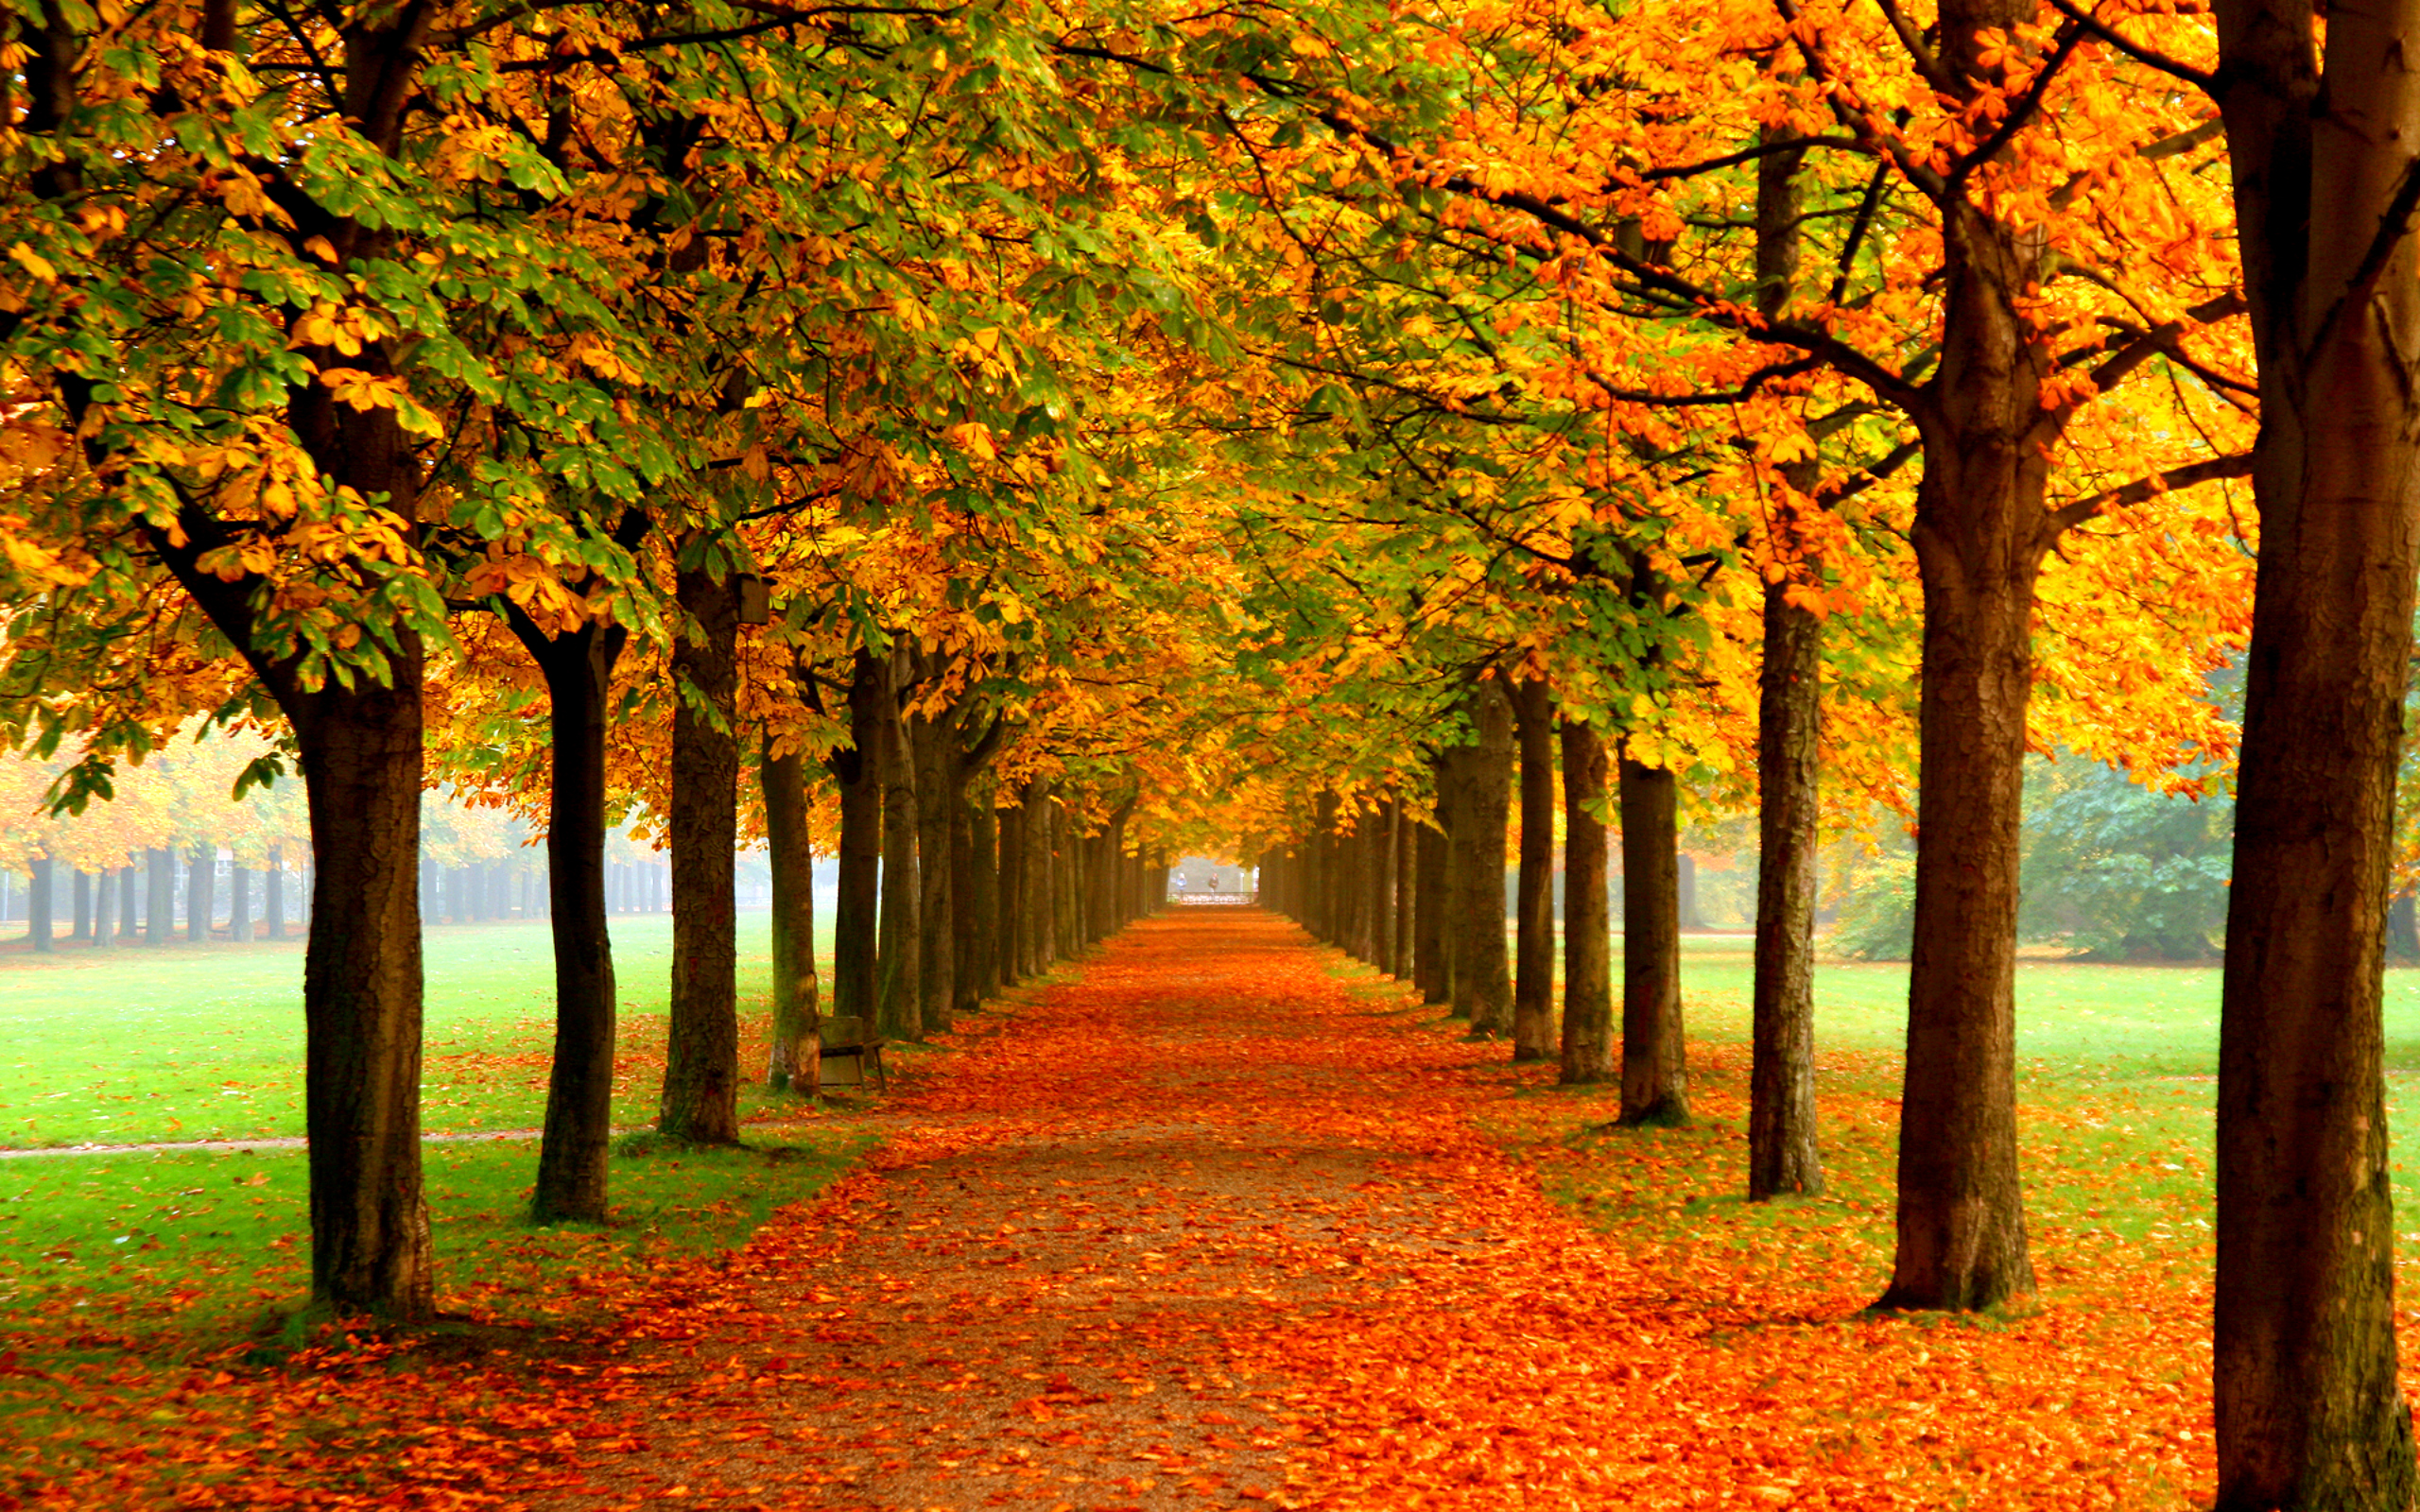 Autumn Colors Wallpaper Images & Pictures - Becuo